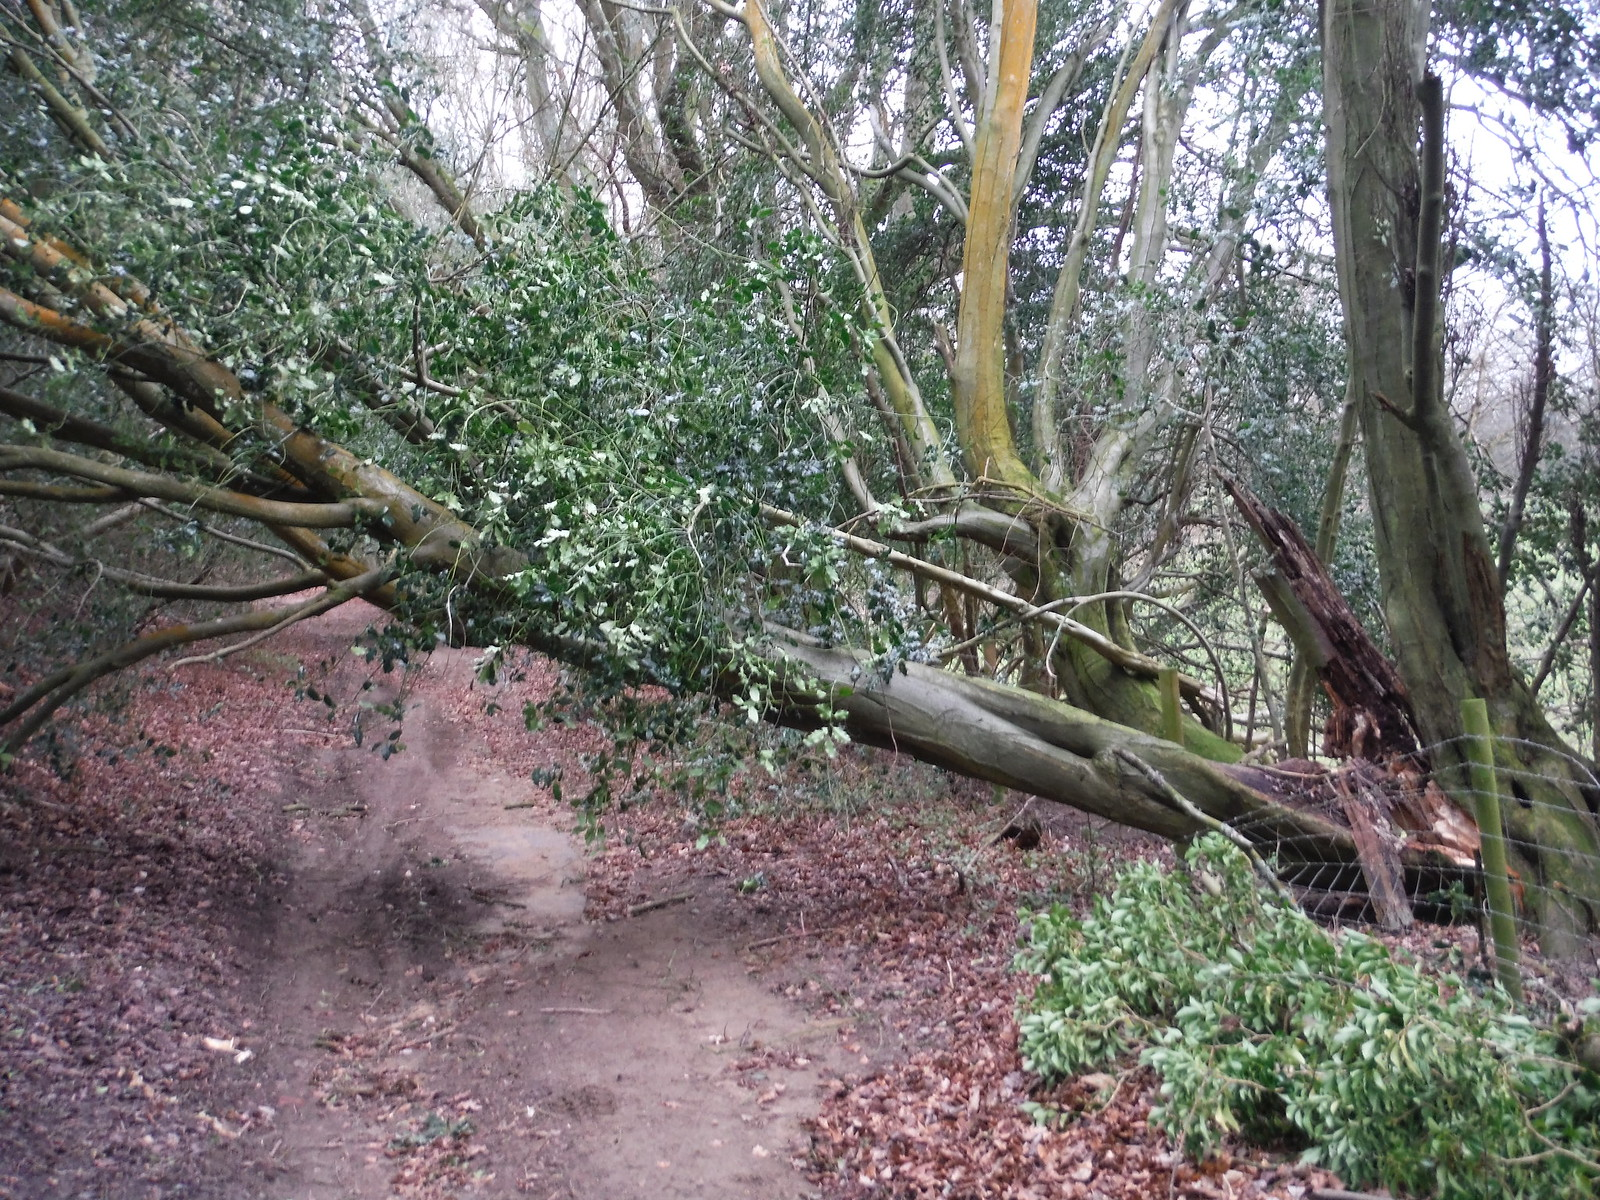 Storm 'Doris' has gone through SWC Walk 144 Haslemere to Farnham